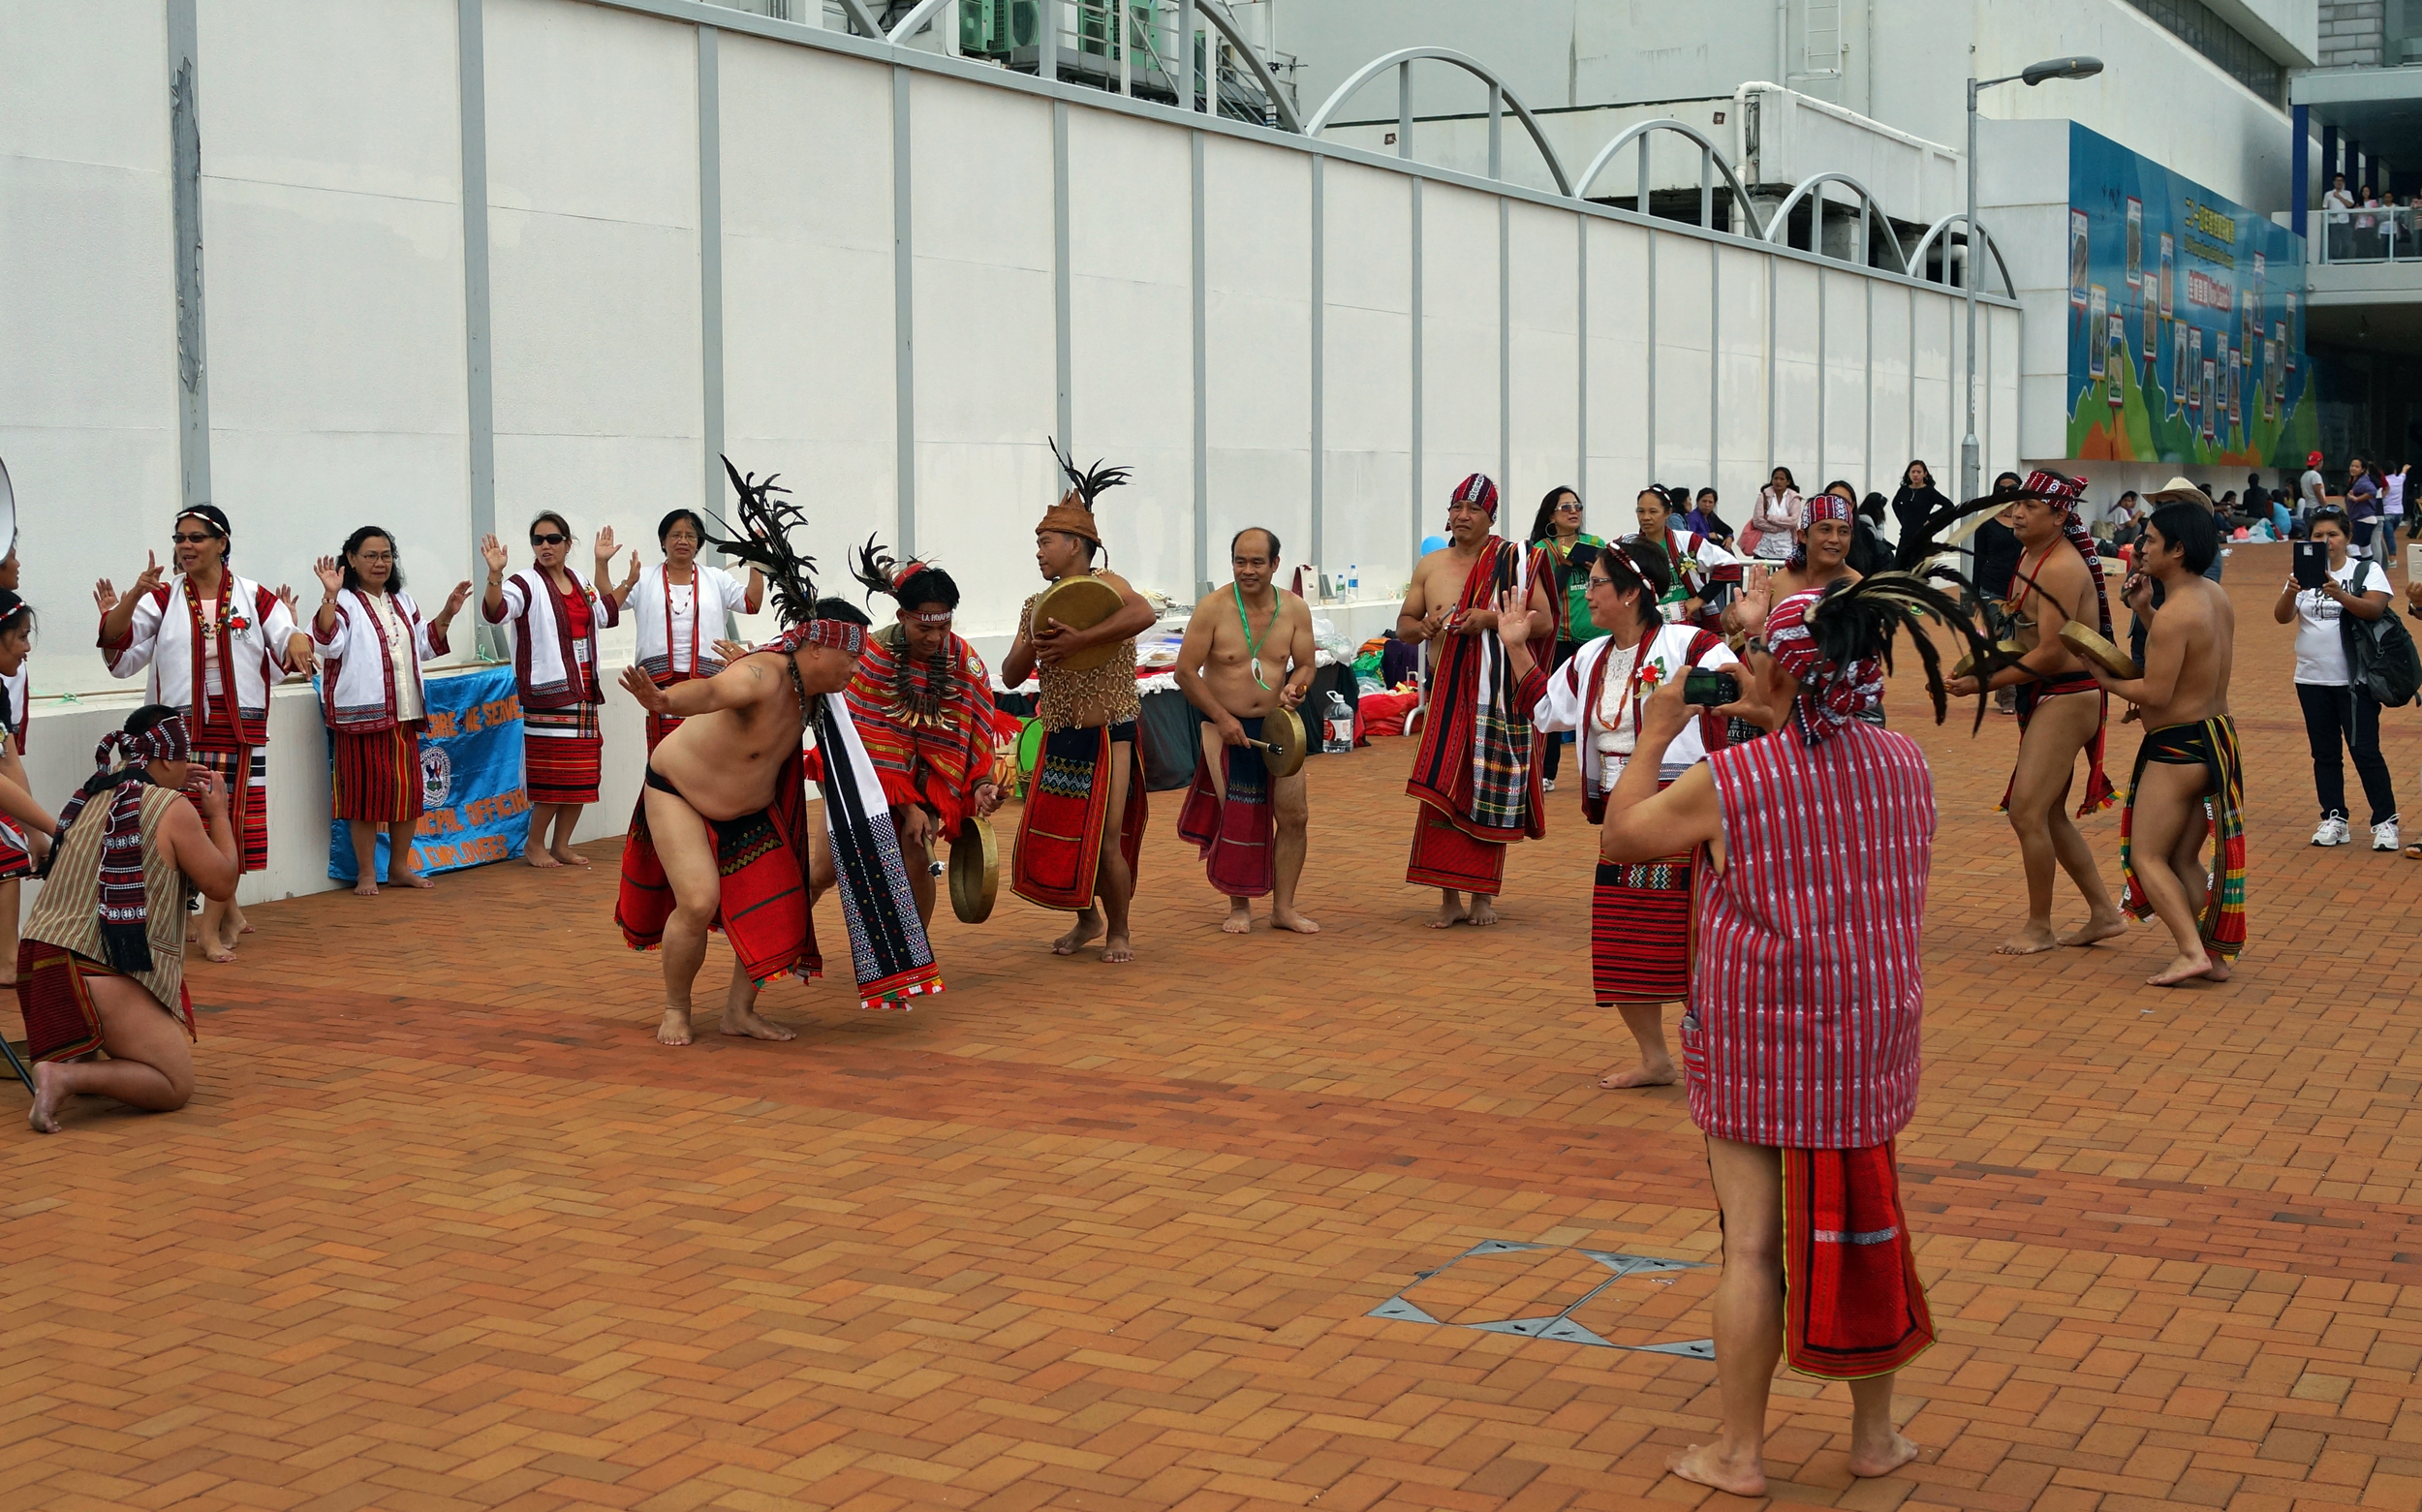 """A group of ethnic Filipino's doing a """"tribal"""" dance in Central, I doubt the world is ready for my ar.e and gut!"""